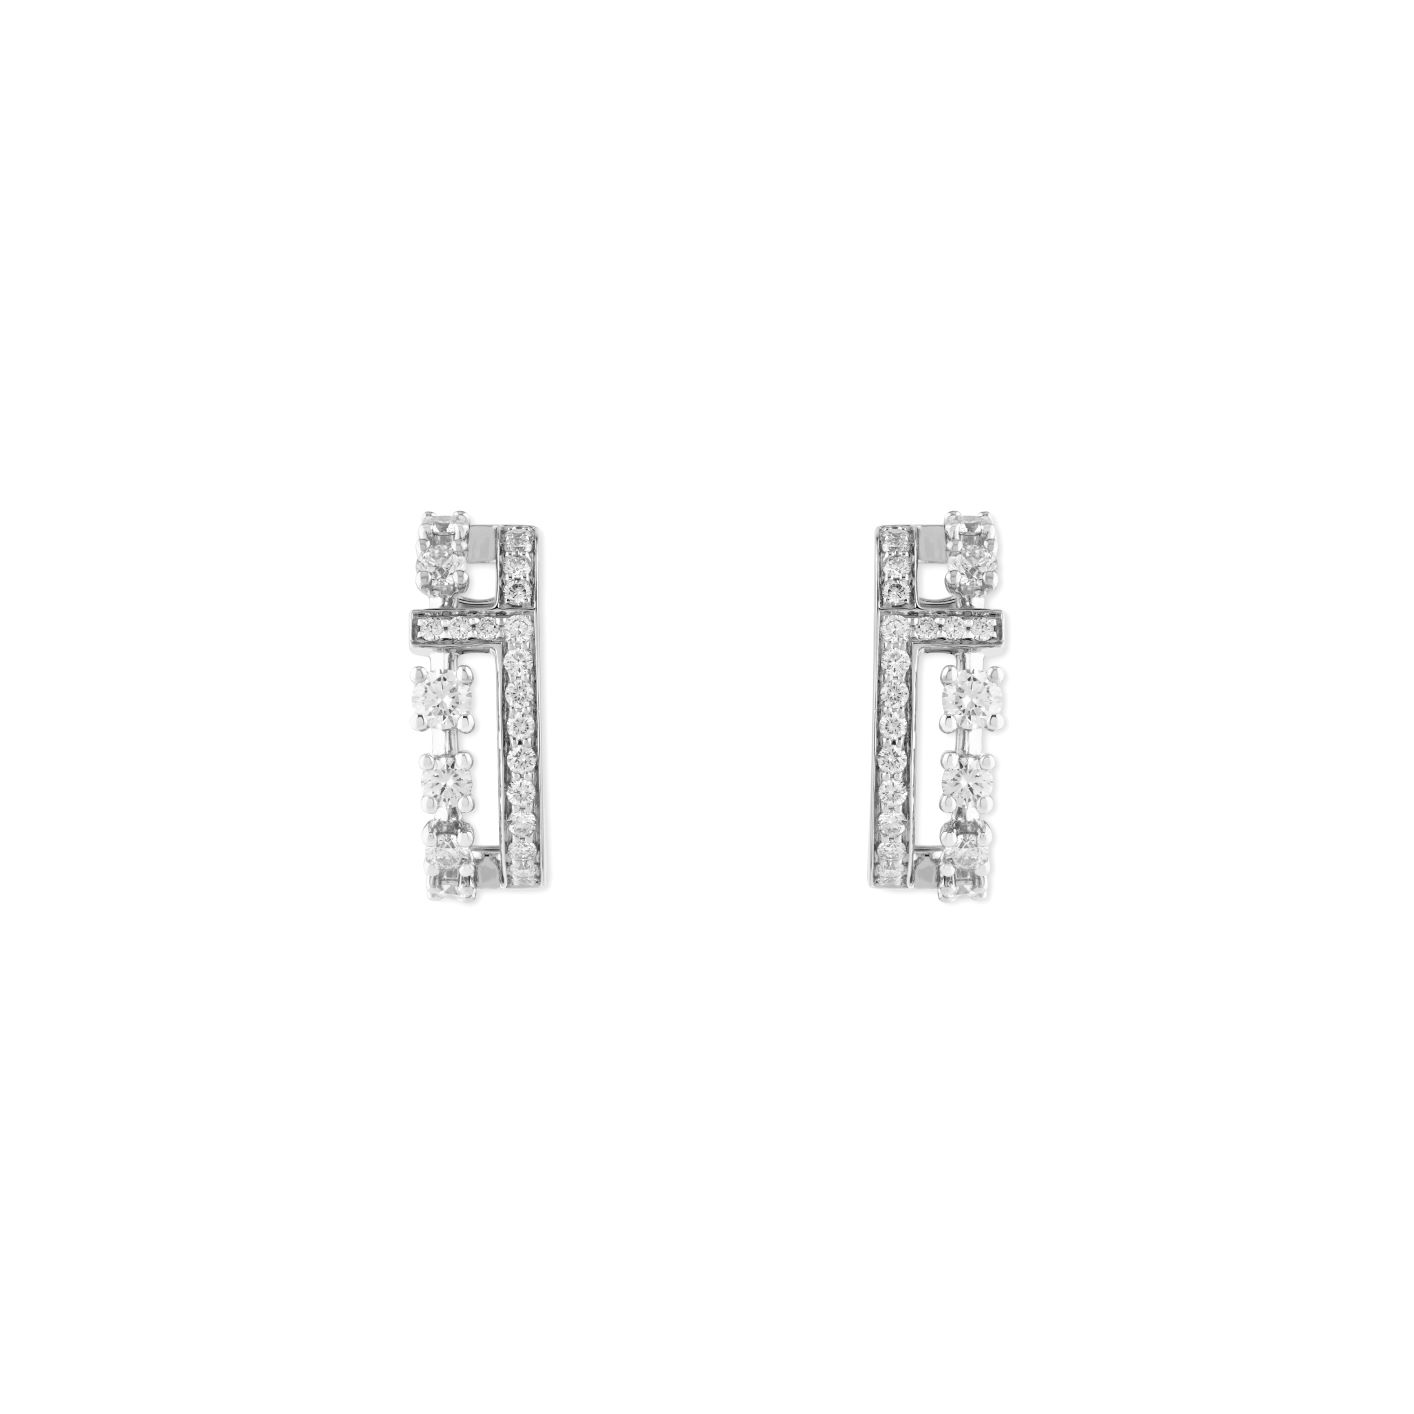 Avenues Post Earrings